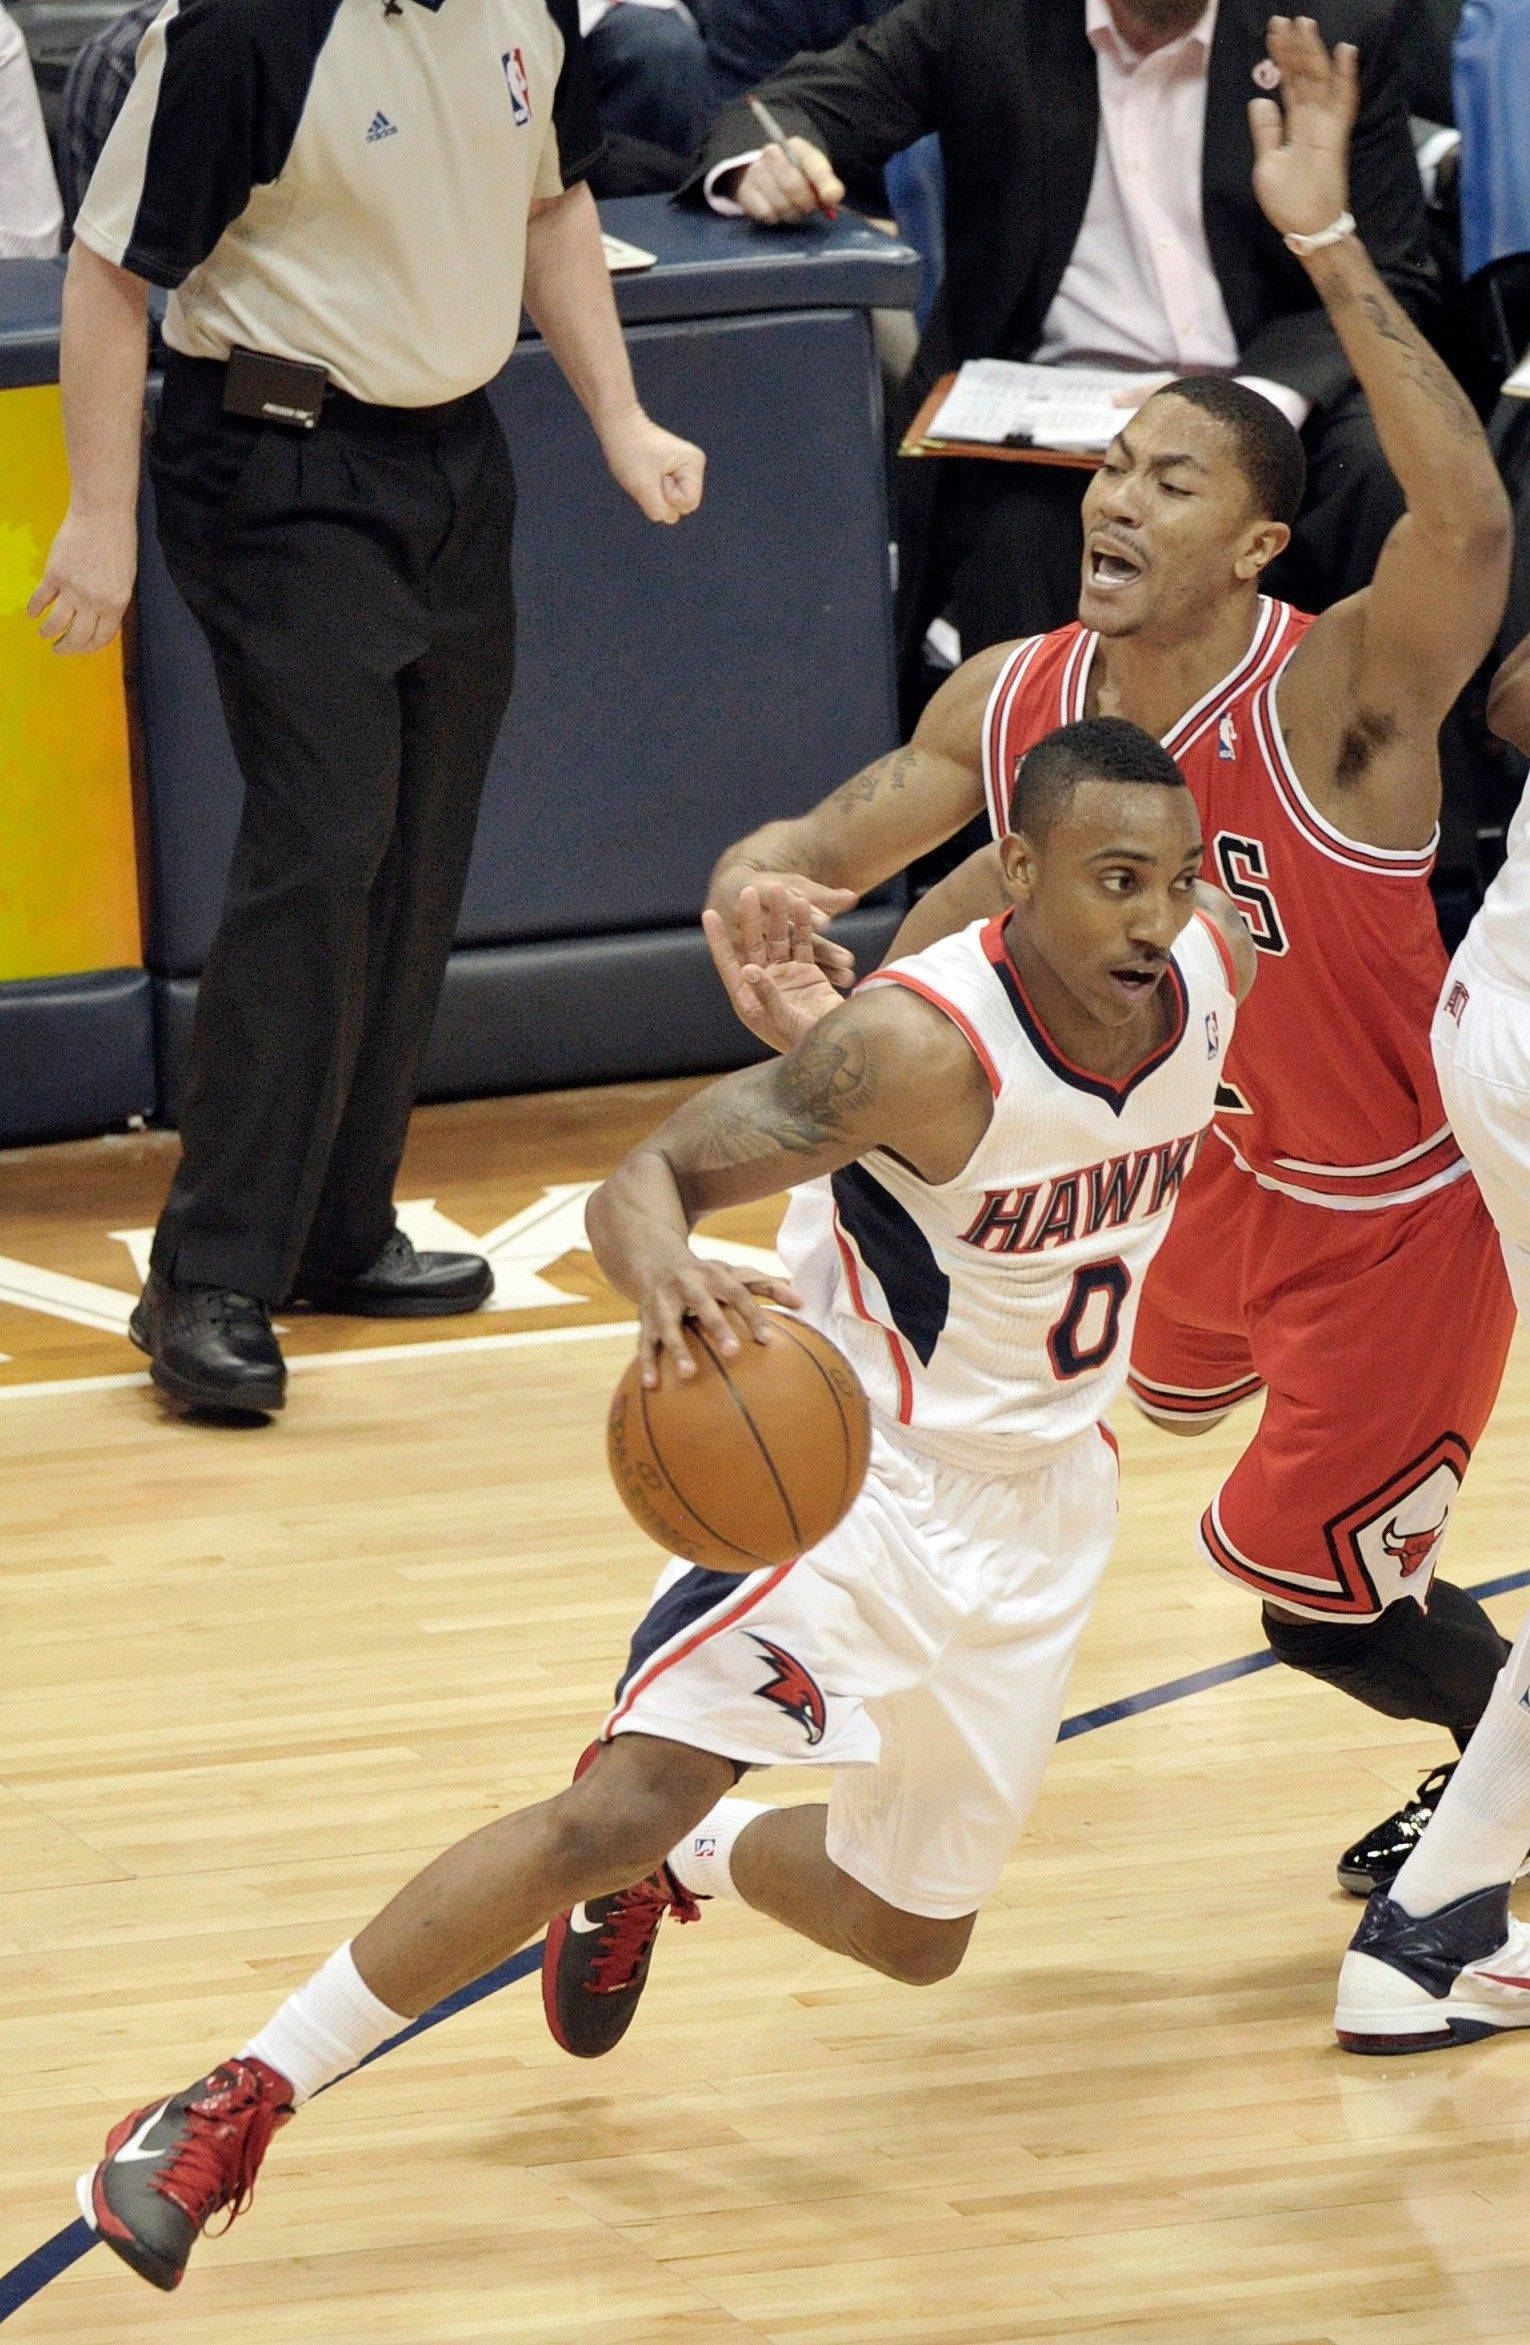 Chicago Bulls point guard Derrick Rose defends Atlanta Hawks guard Jeff Teague in the first quarter of Game 6 in Atlanta Thursday.